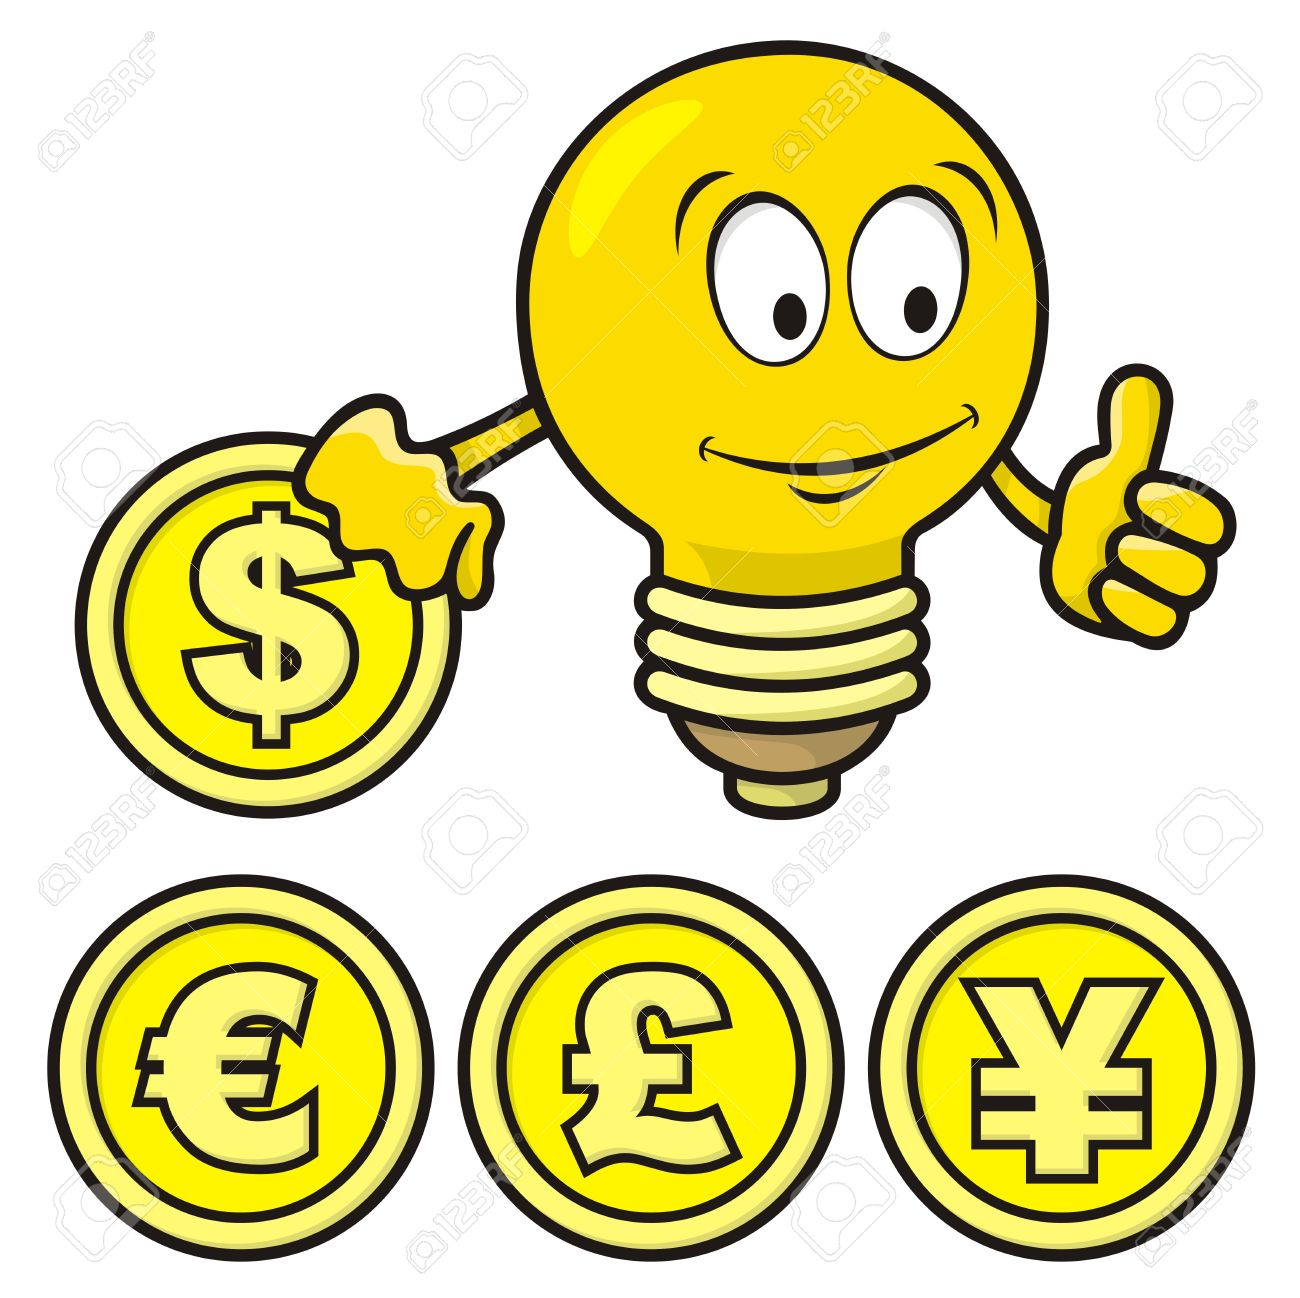 Cartoon of smiling bulb giving thumbs up and holding a coin. - 9448176